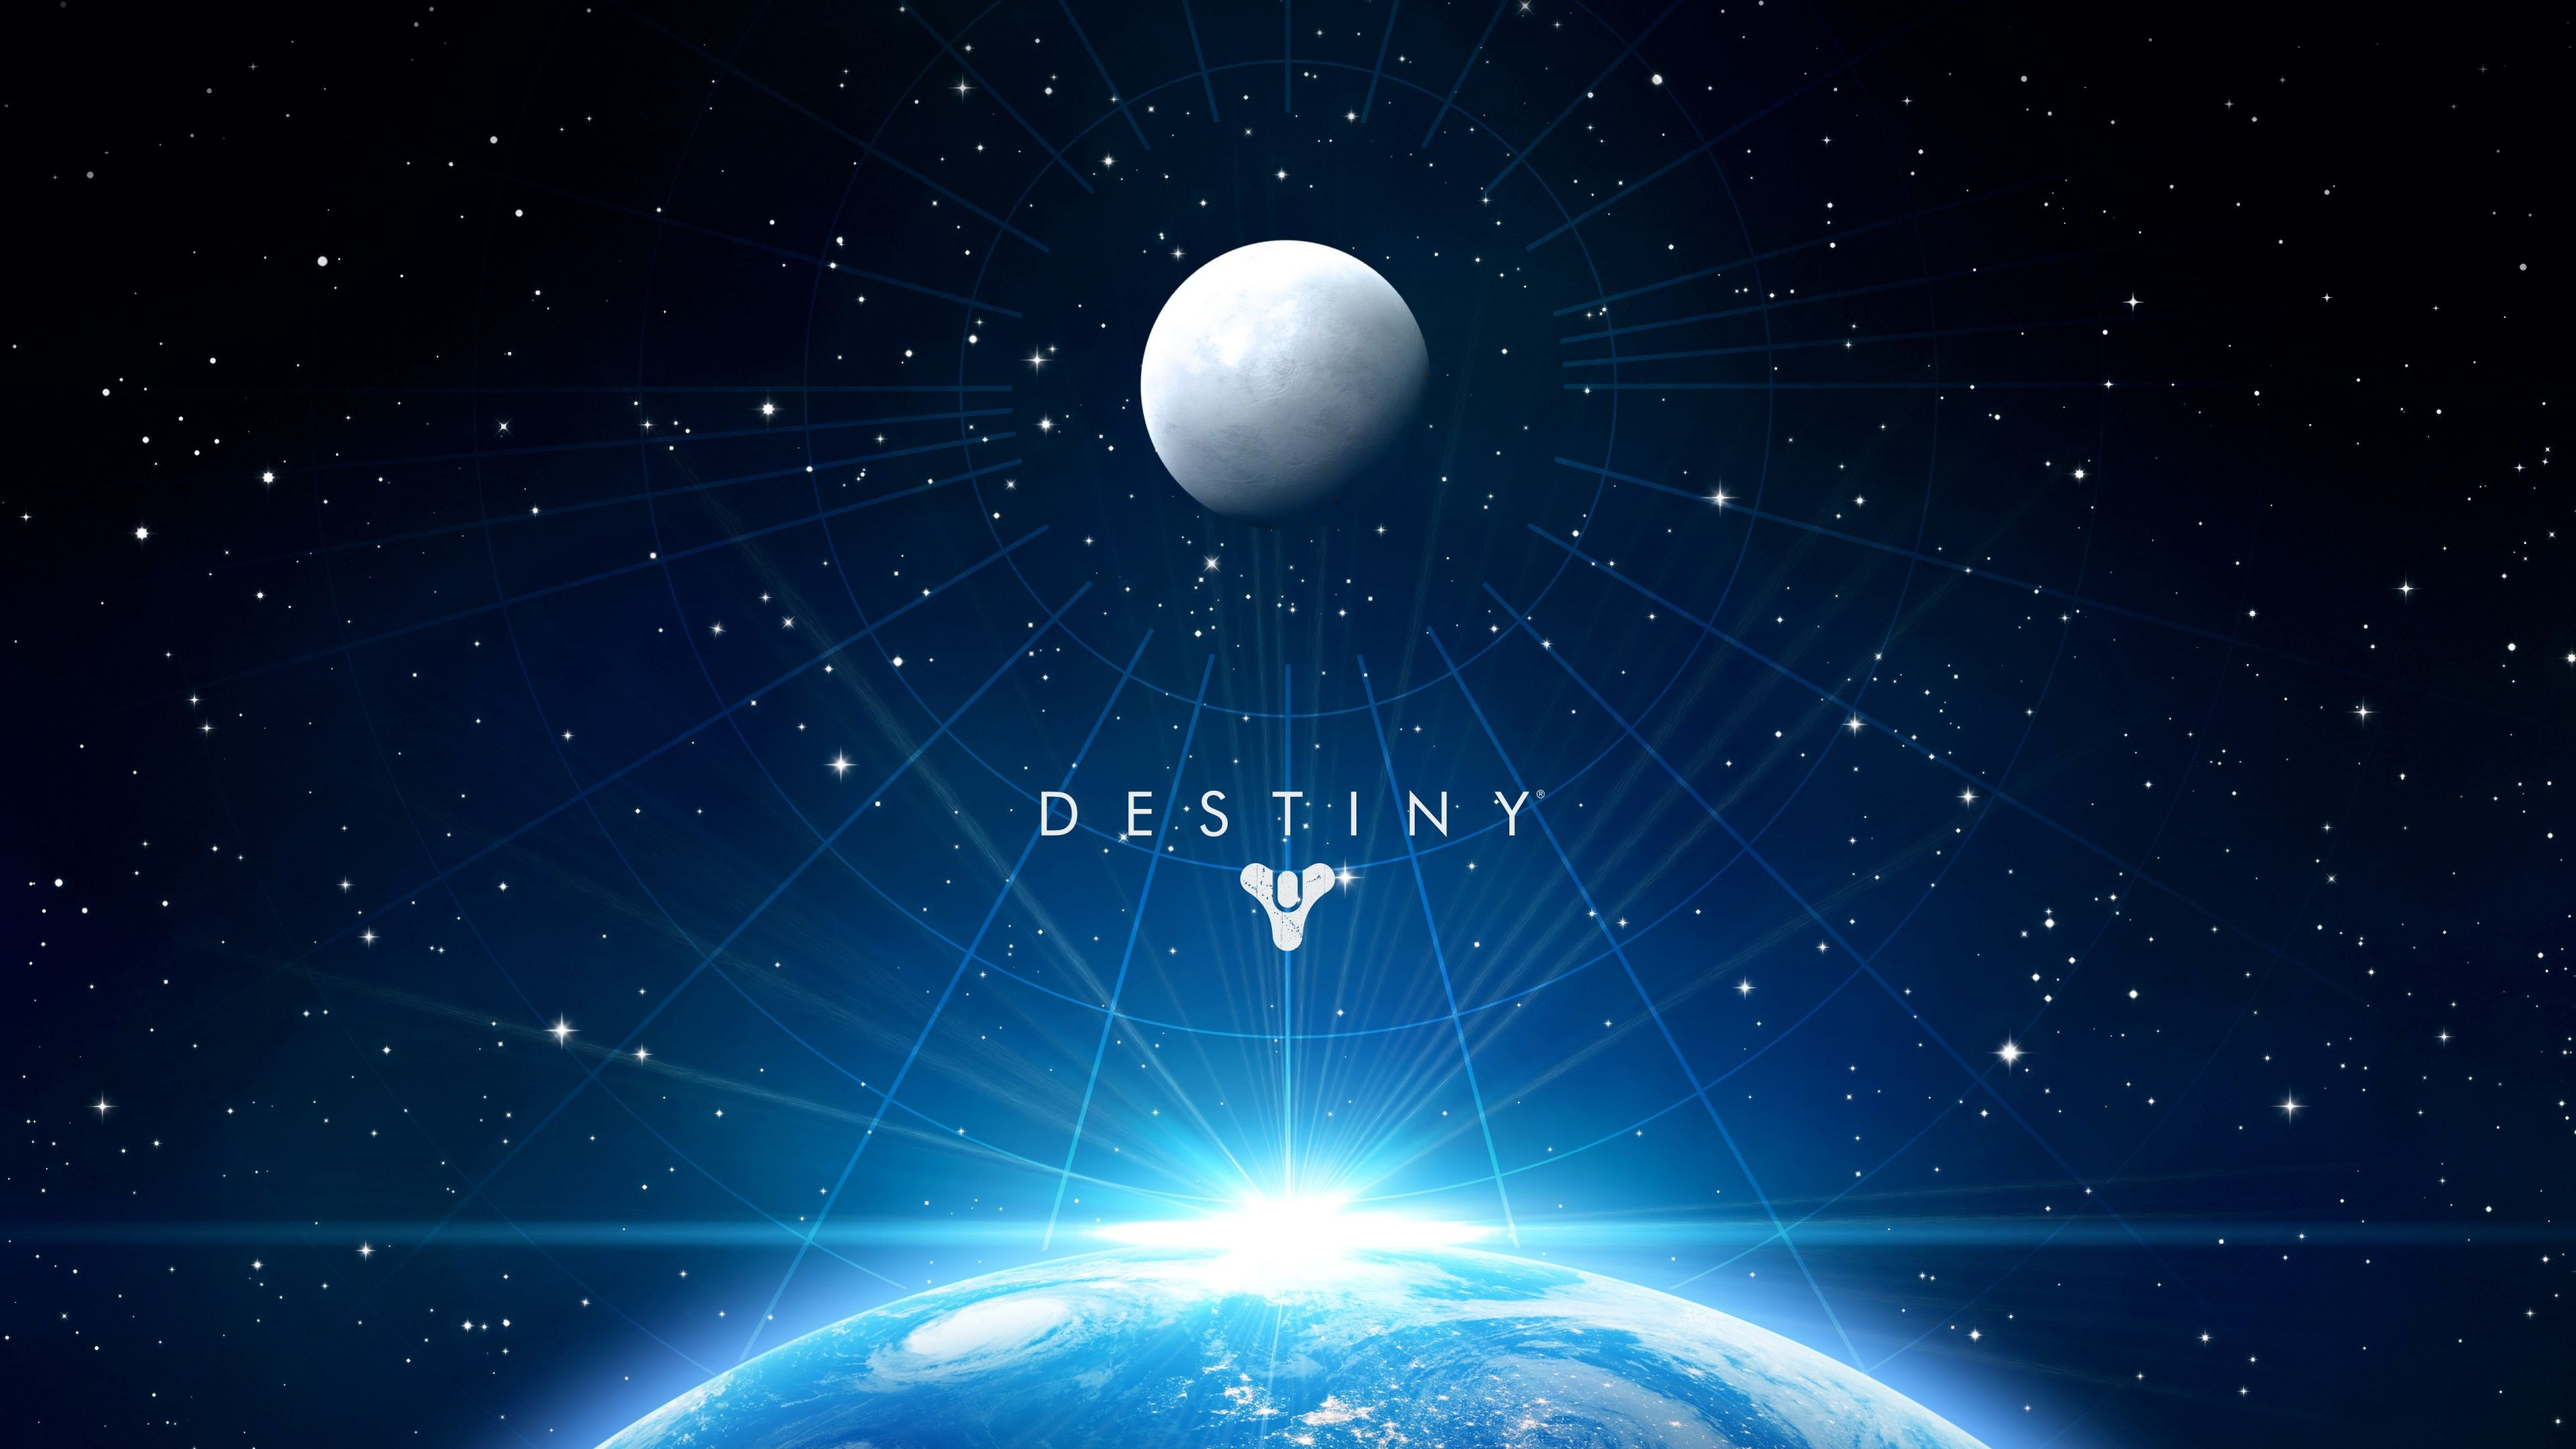 3840x2160 destiny 4k hd image for wallpaper wallpapers and 3840x2160